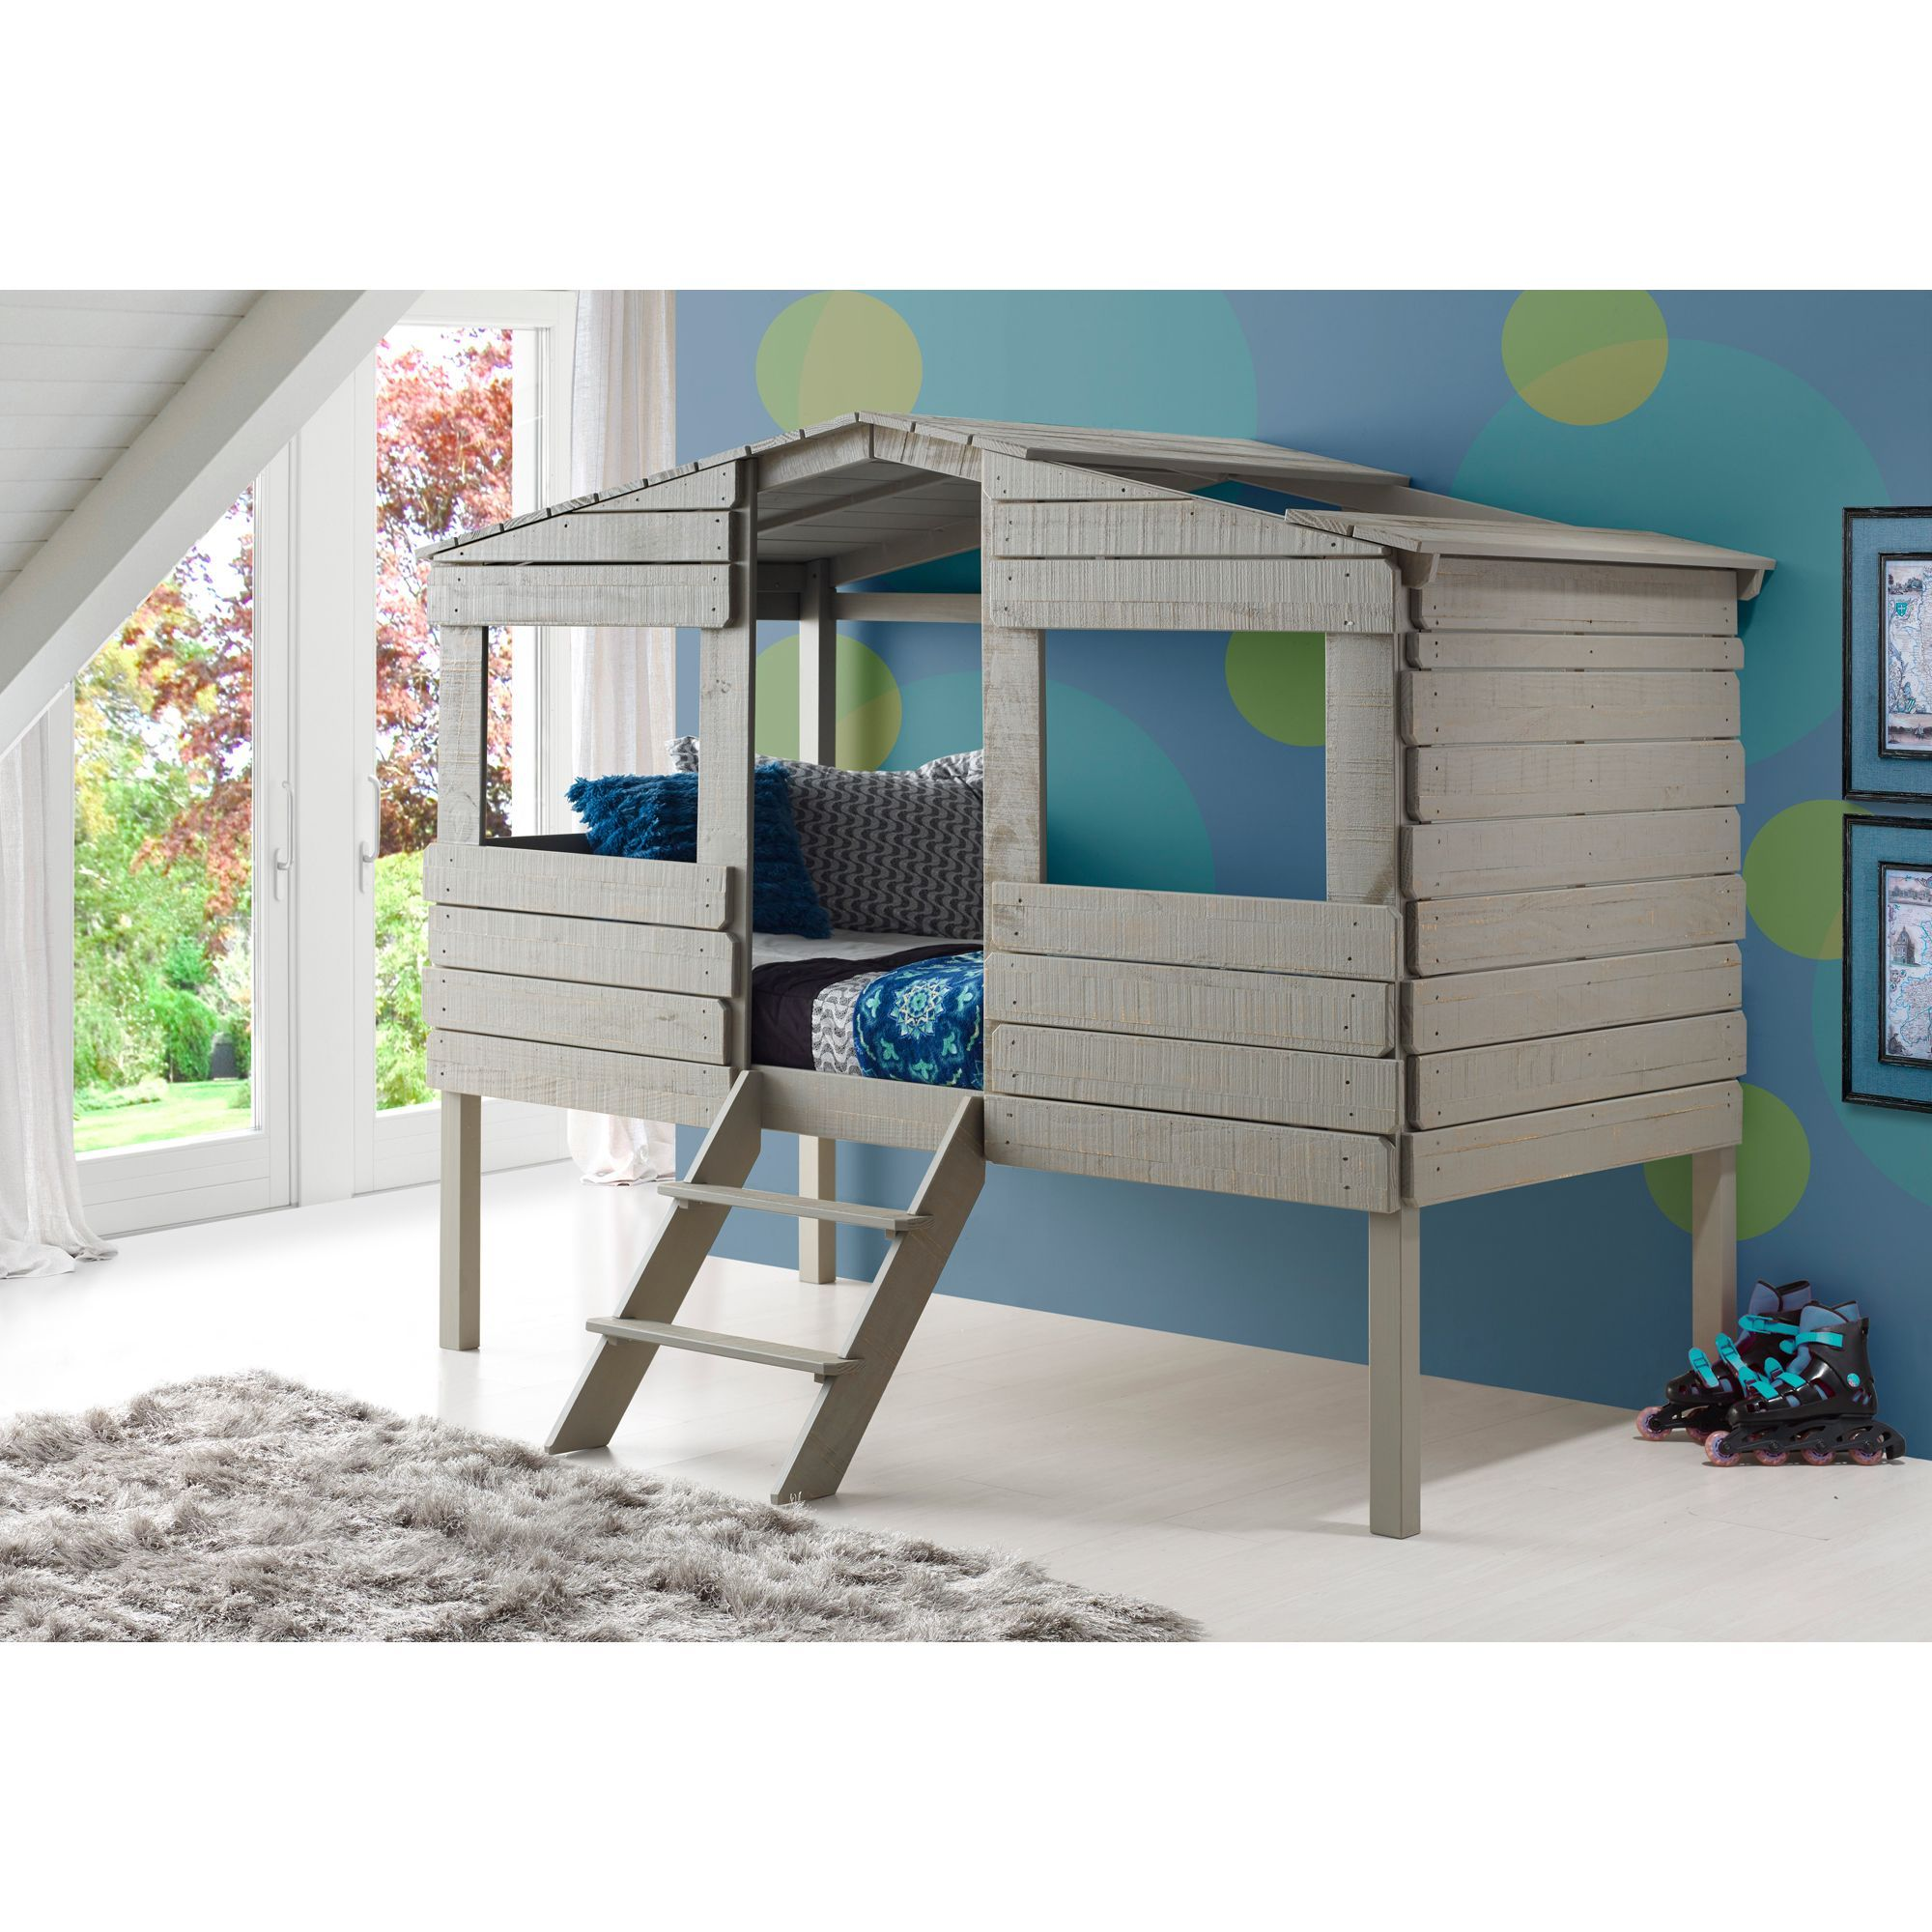 Grey loft bed with desk  Donco Kids Rustic Grey Pine Wood Twinsize Tree House Loft Bed Twin